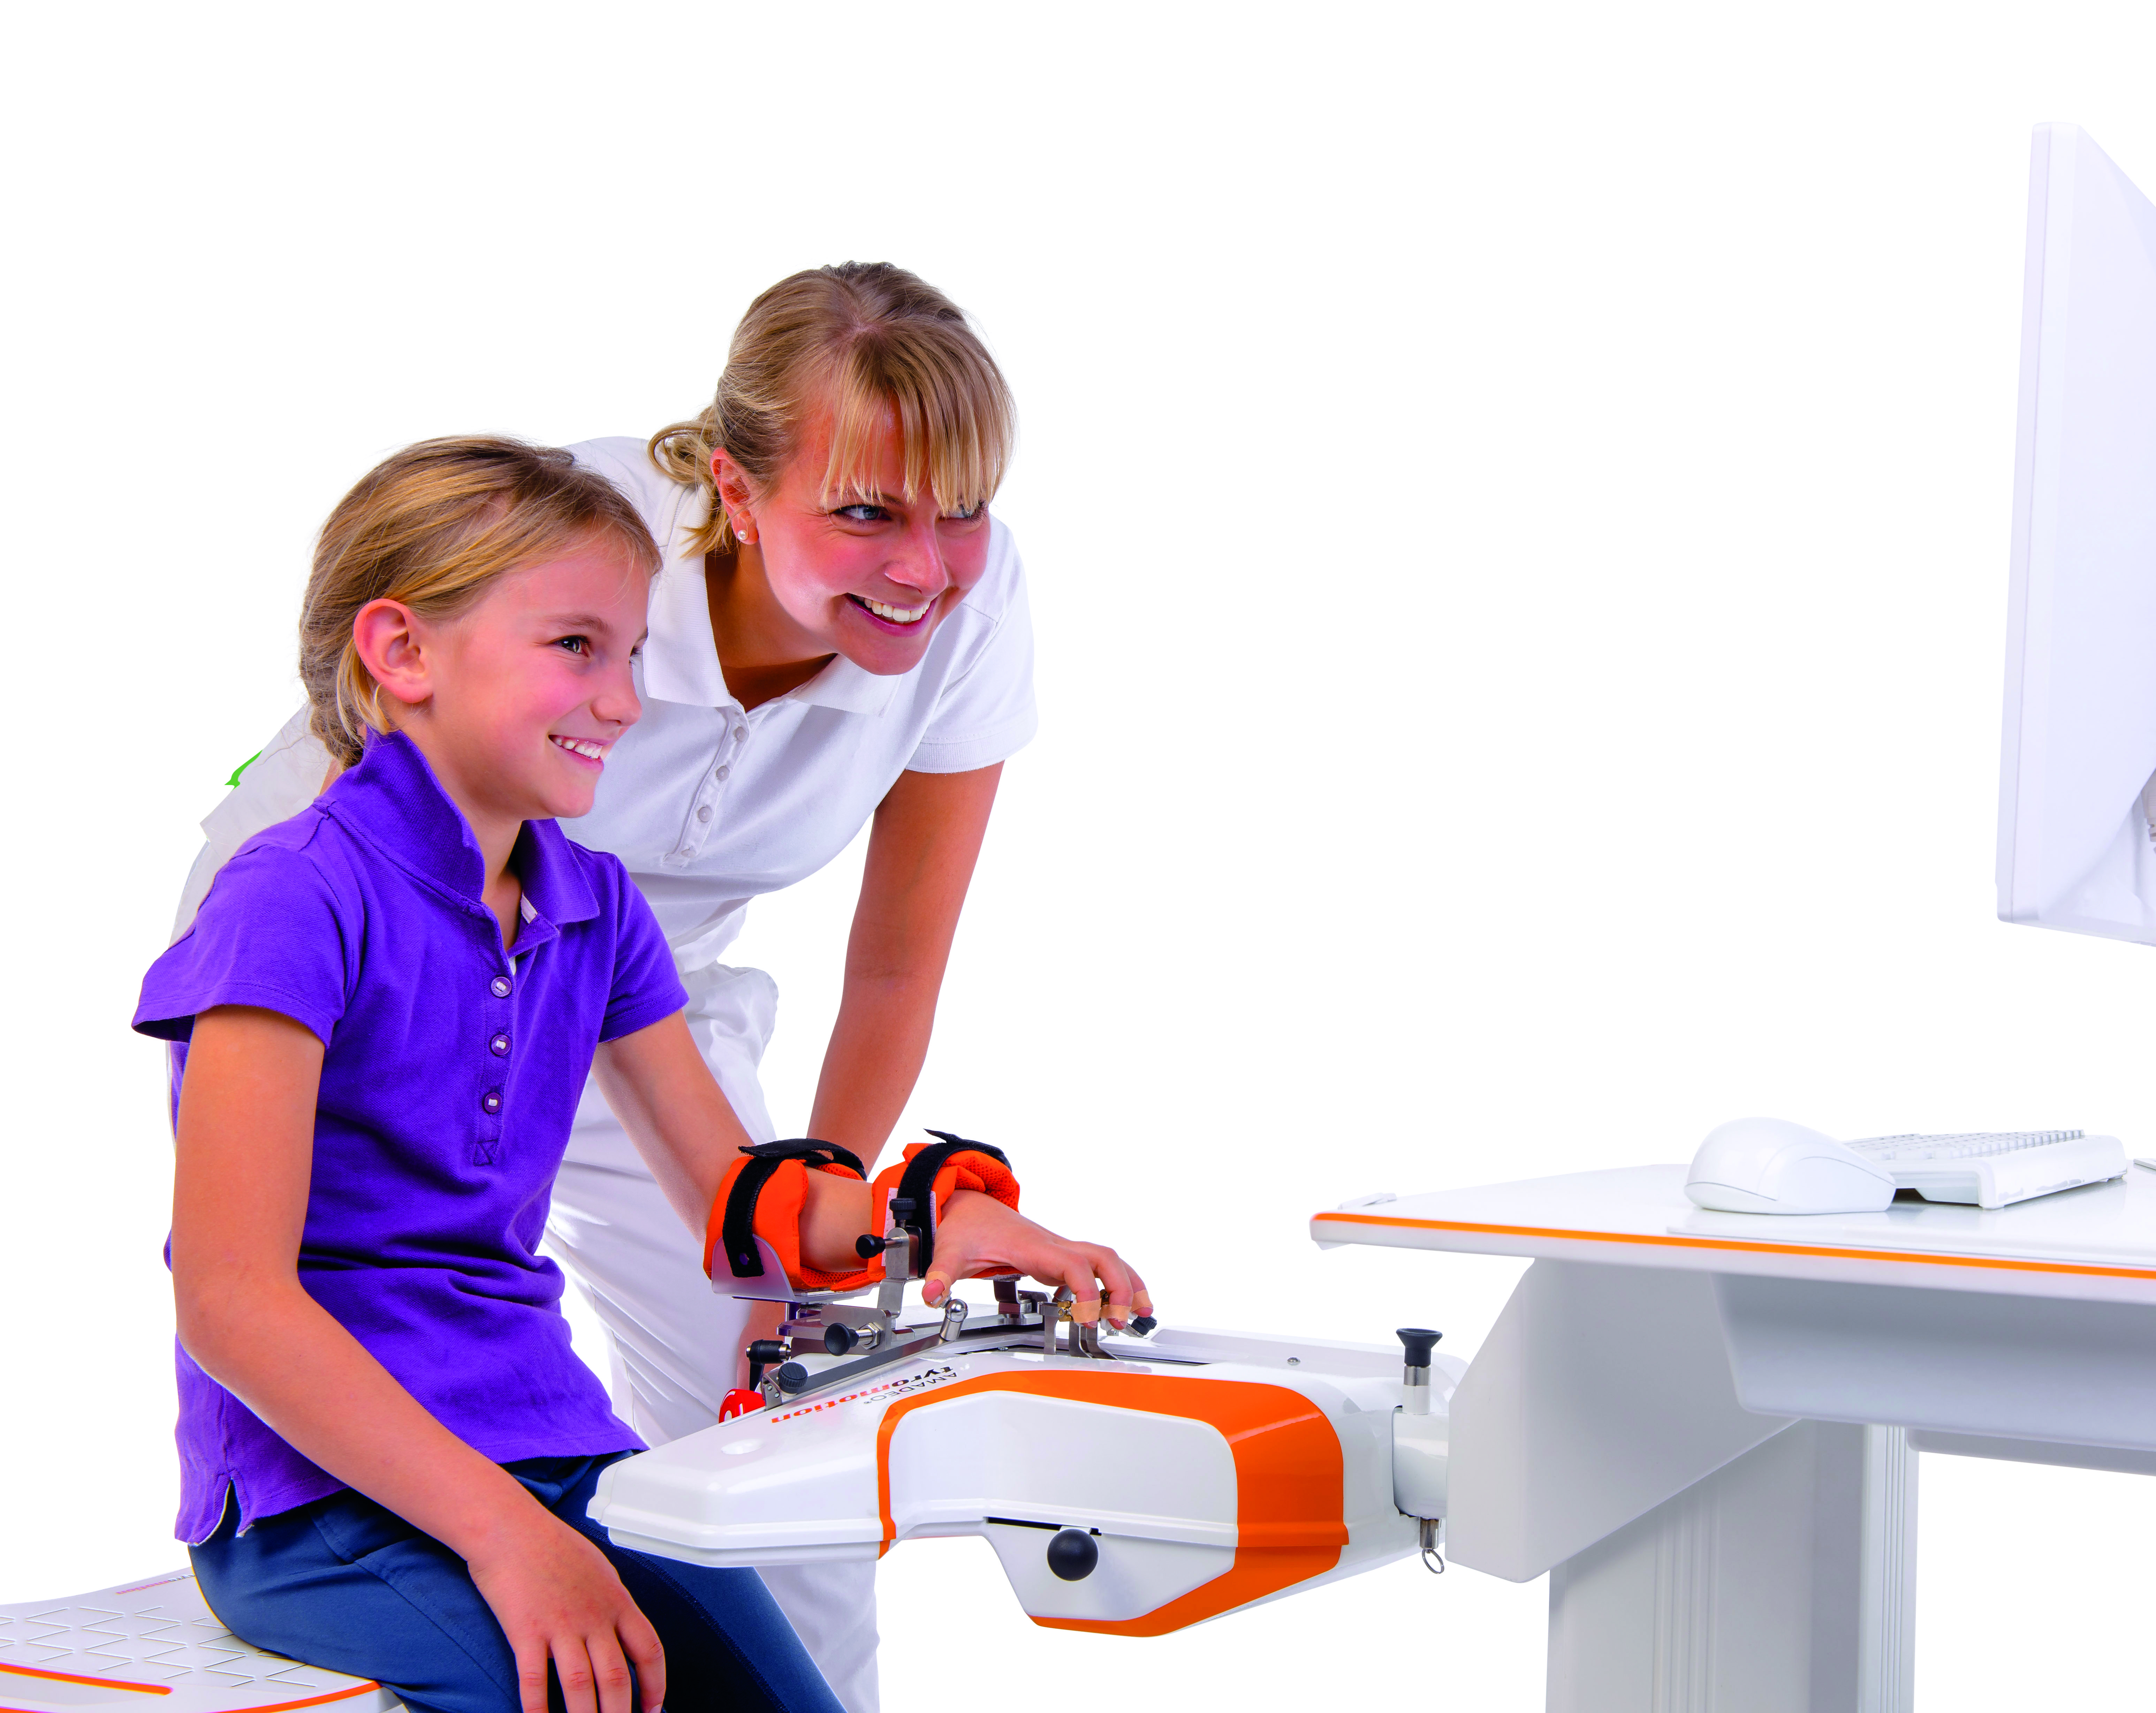 AMADEO Robotic Hand Therapy